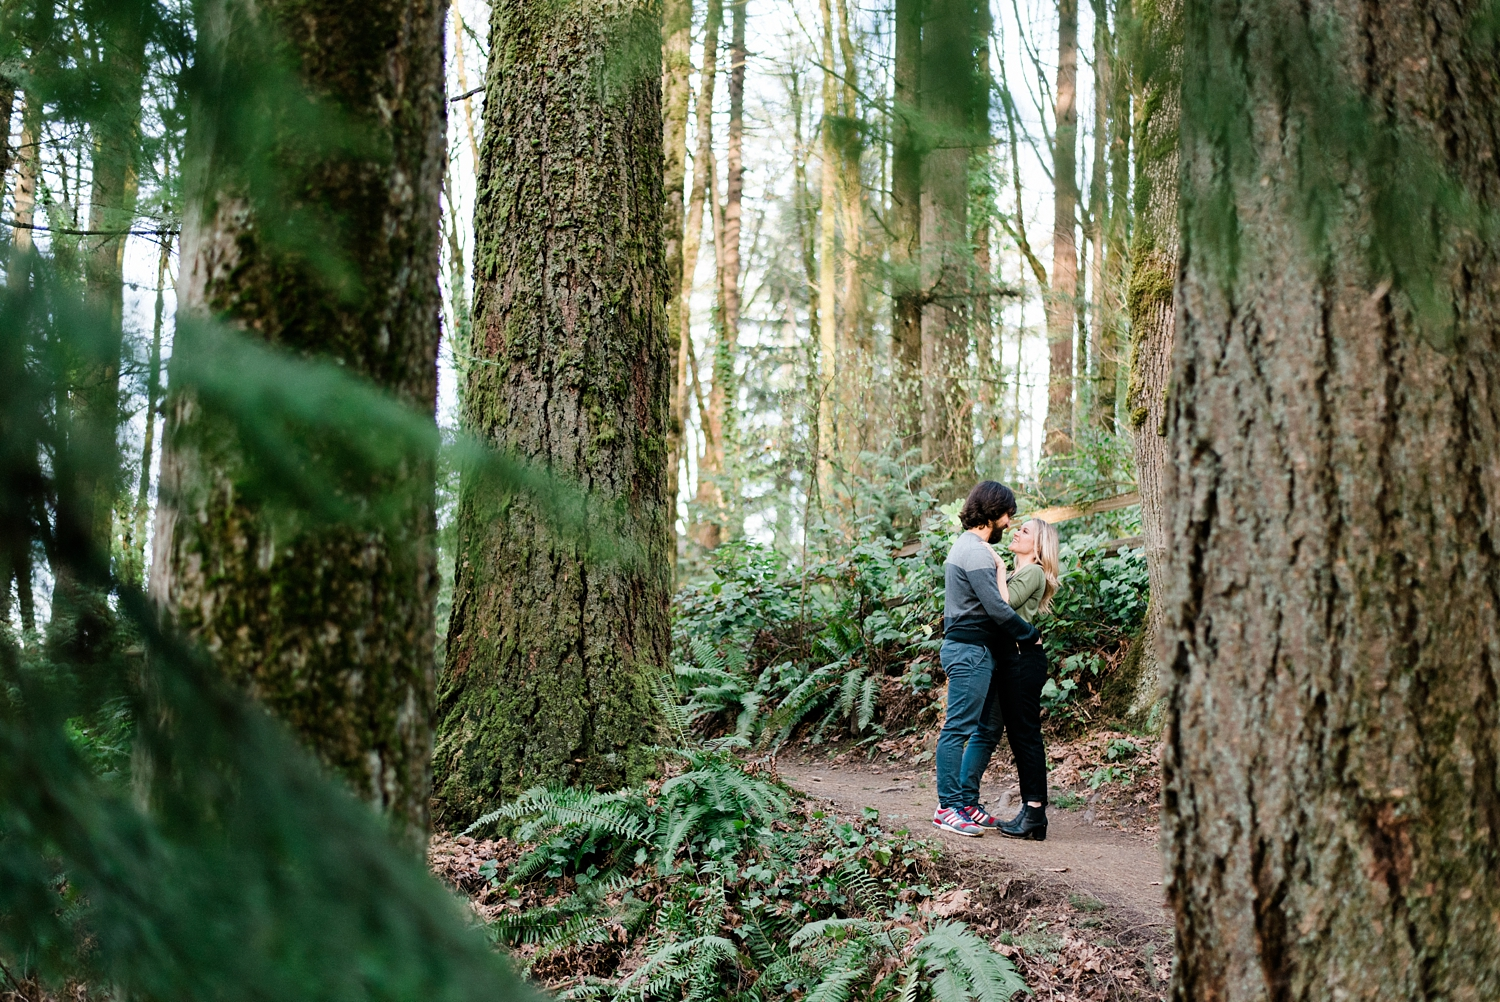 washington-park-portland-engagement-photos-hoyt-arboretum-shelley-marie-photo-157_cr.jpg